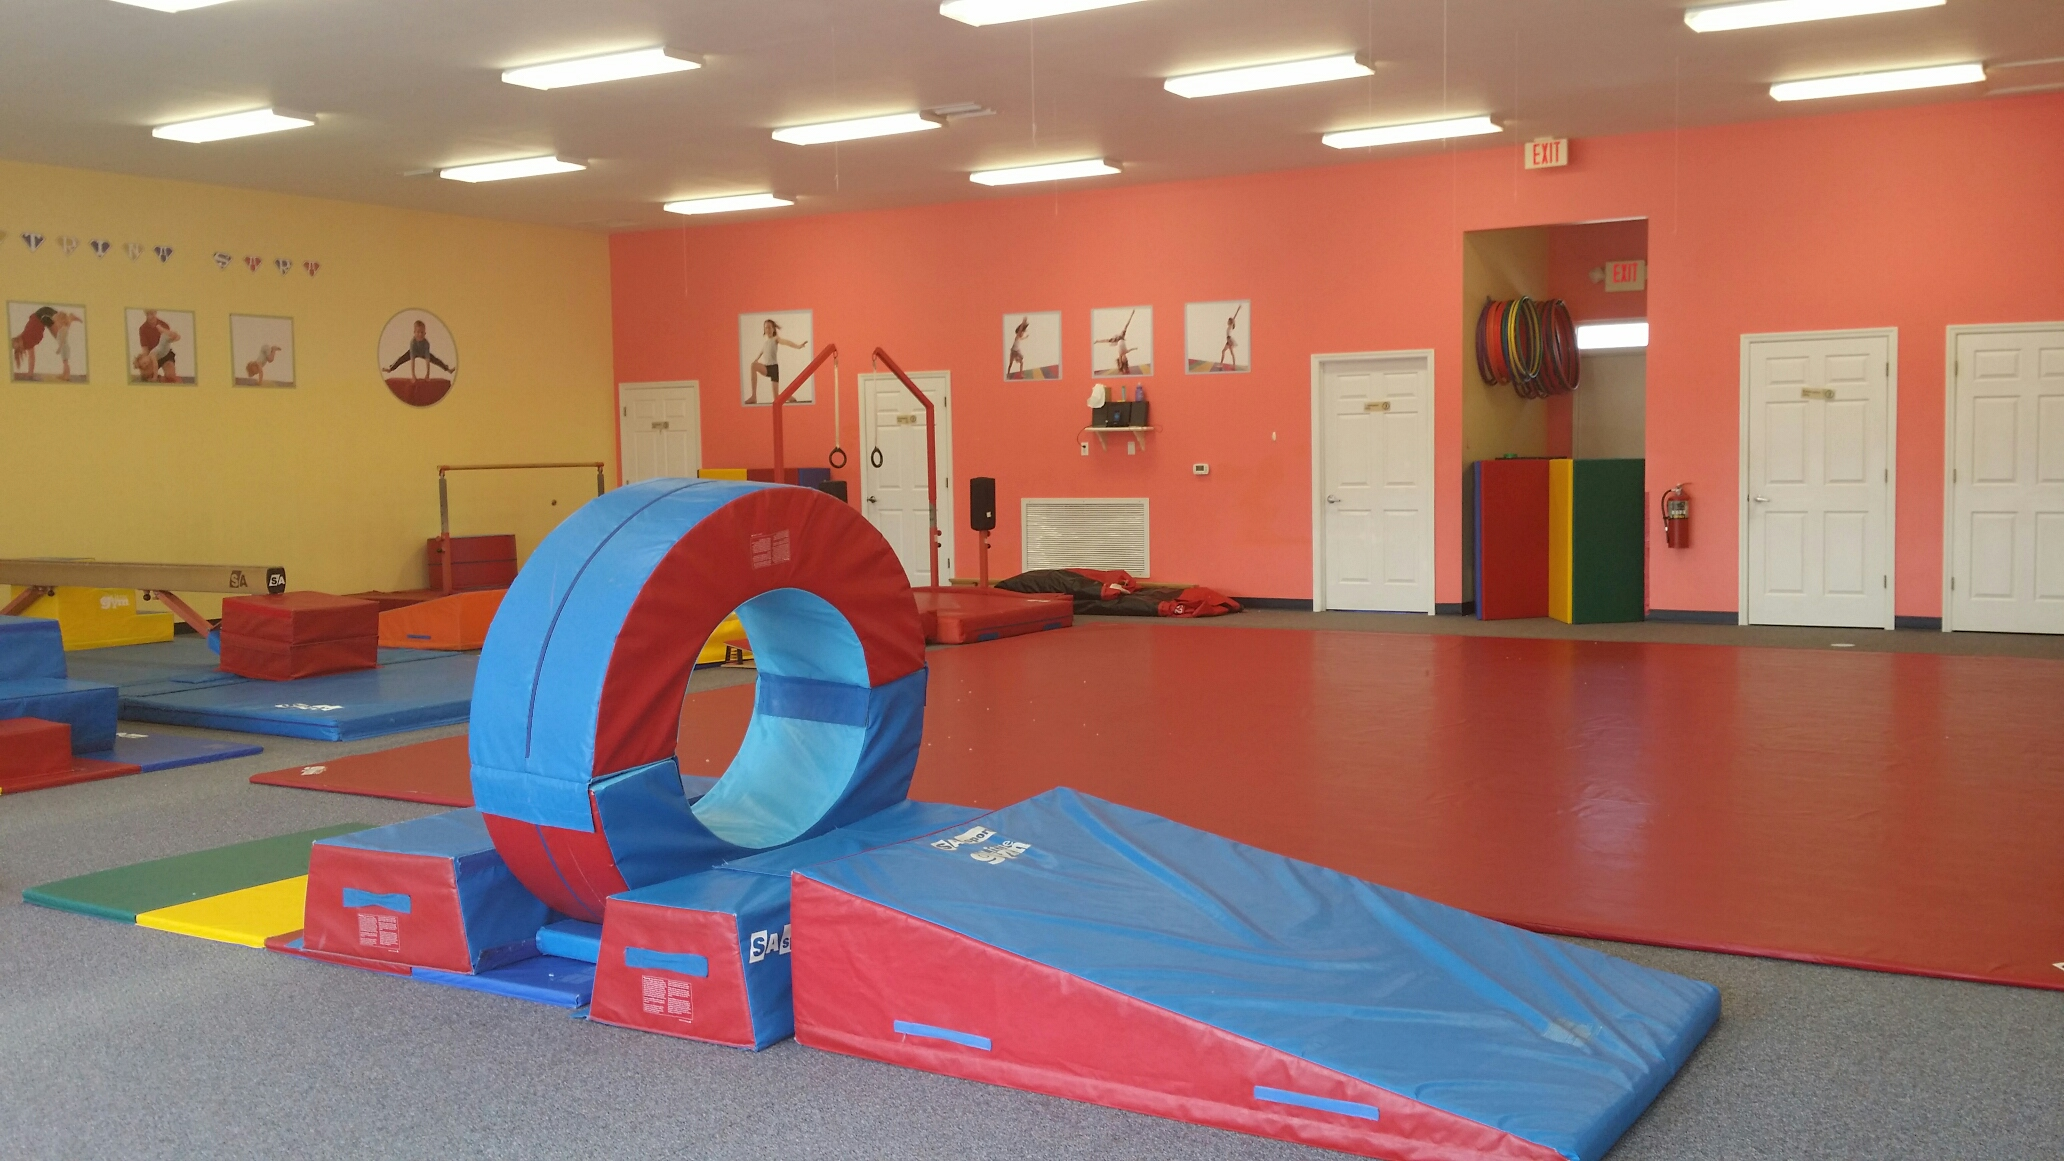 The Little Gym of Port Orange - Offering gymnastics, karate